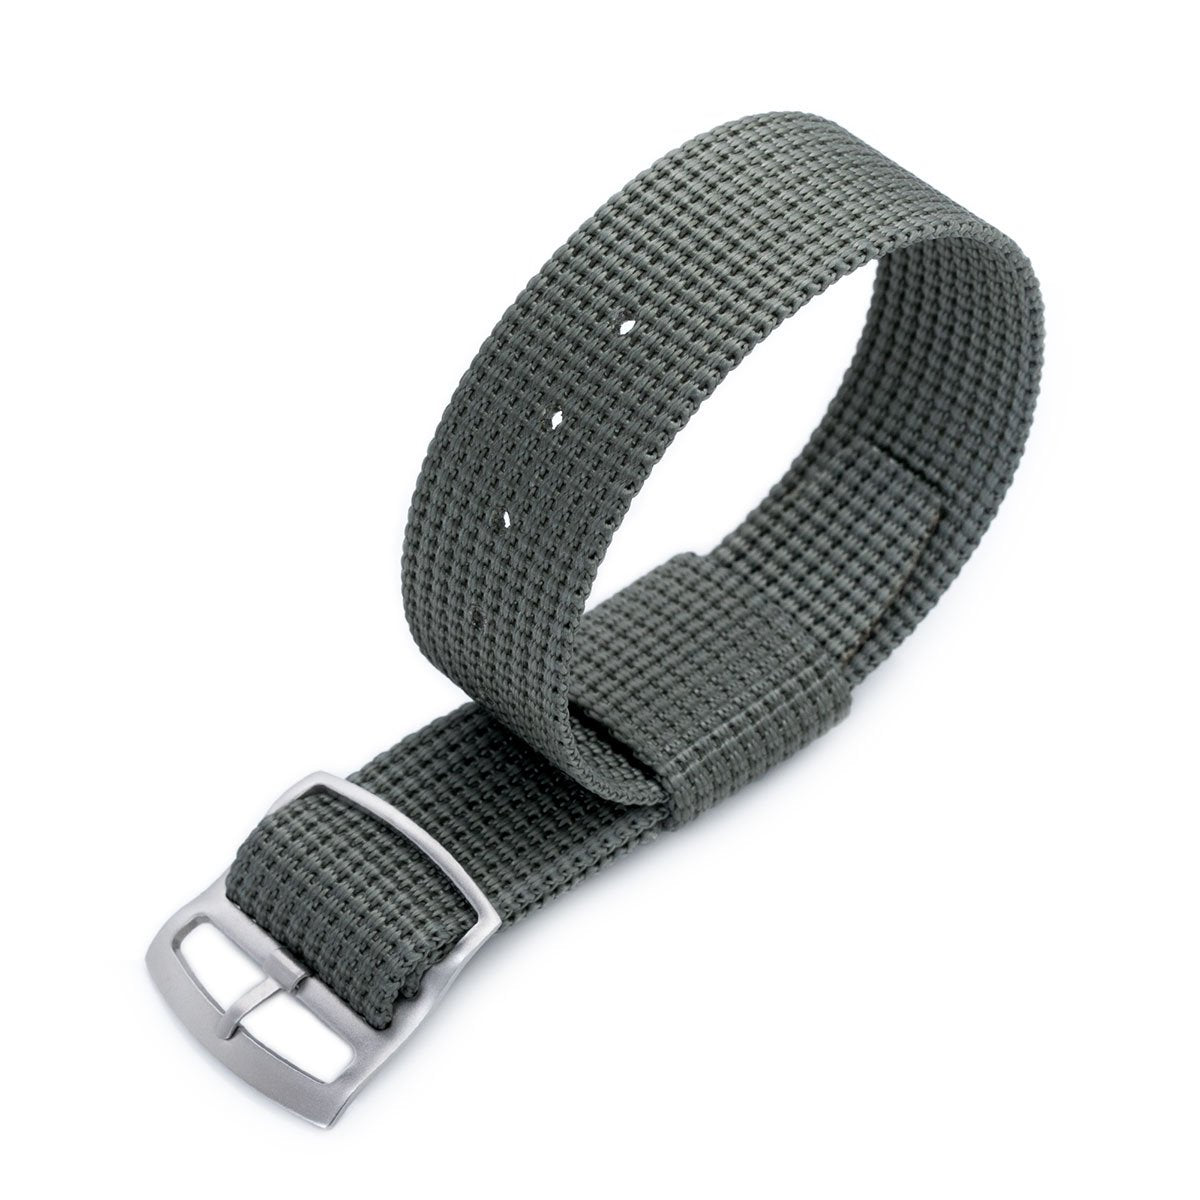 20mm or 22mm MiLTAT RAF N7 3-D Woven Nylon Nato Watch Strap Military Grey Sandblasted Ladder Lock Slider Buckle Strapcode Watch Bands